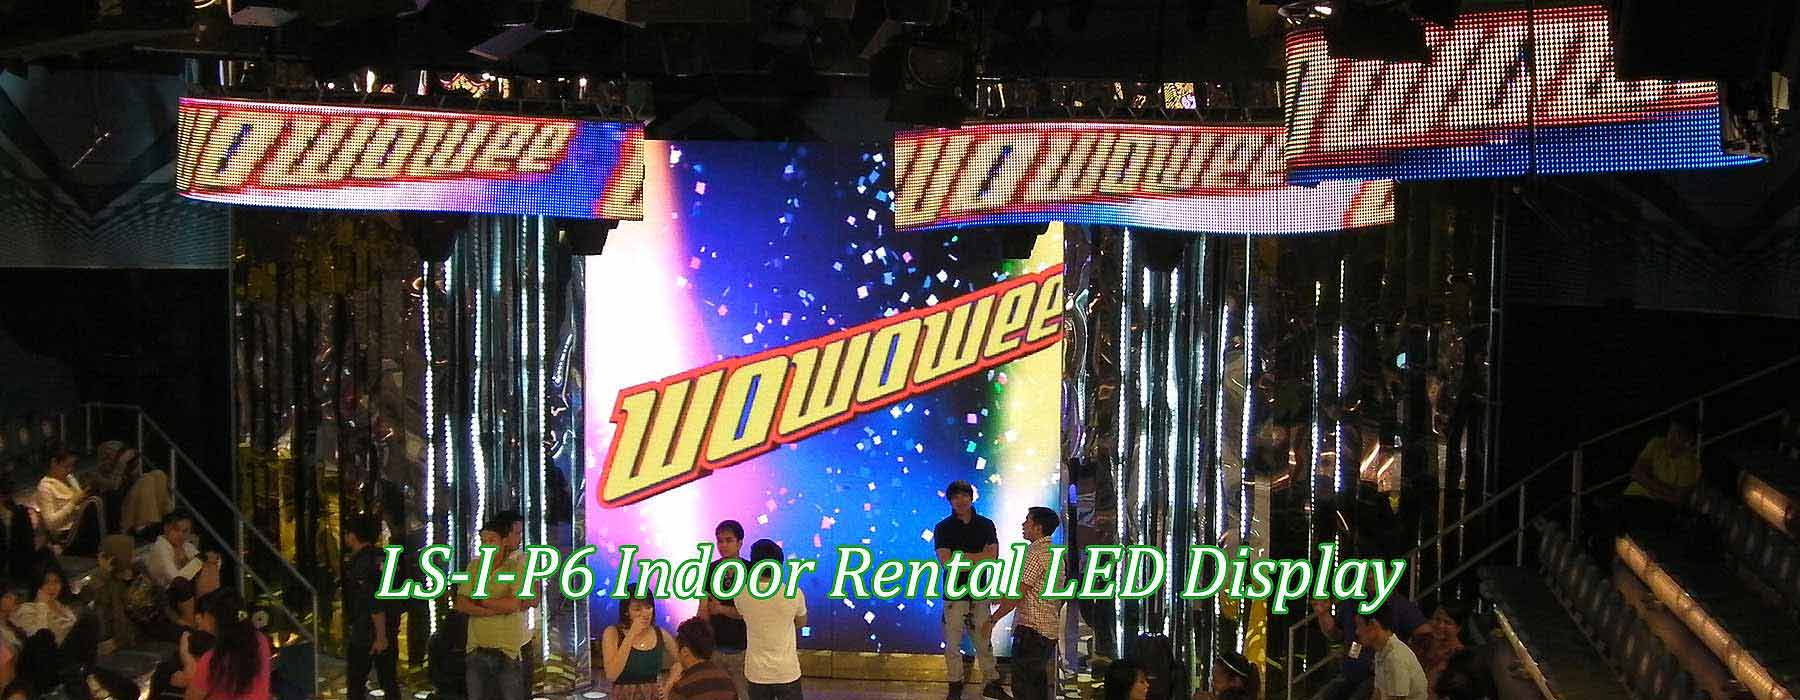 P6-Indoor-Rental-LED-Display1